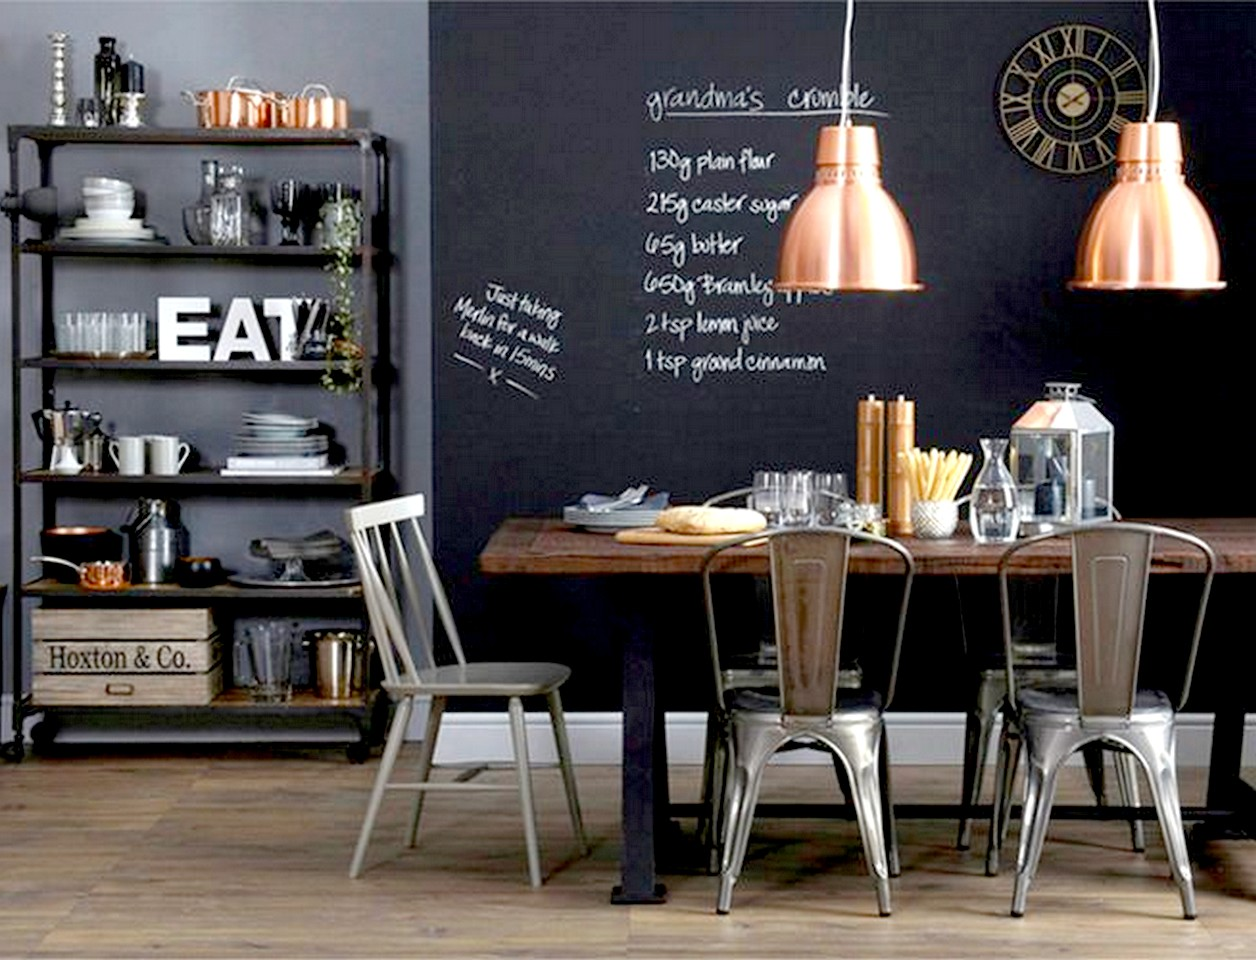 ideas de decoracin originales para la cocina